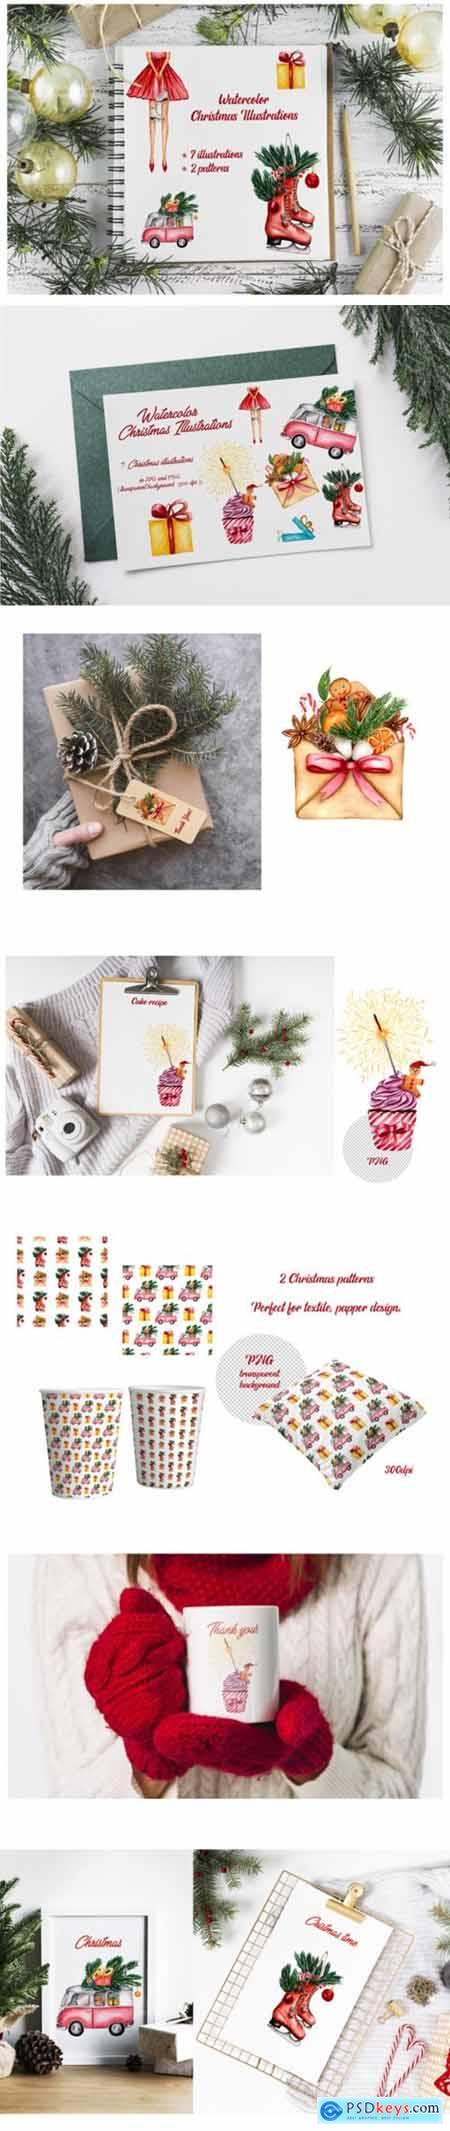 Watercolor Christmas Illustrations 2178831